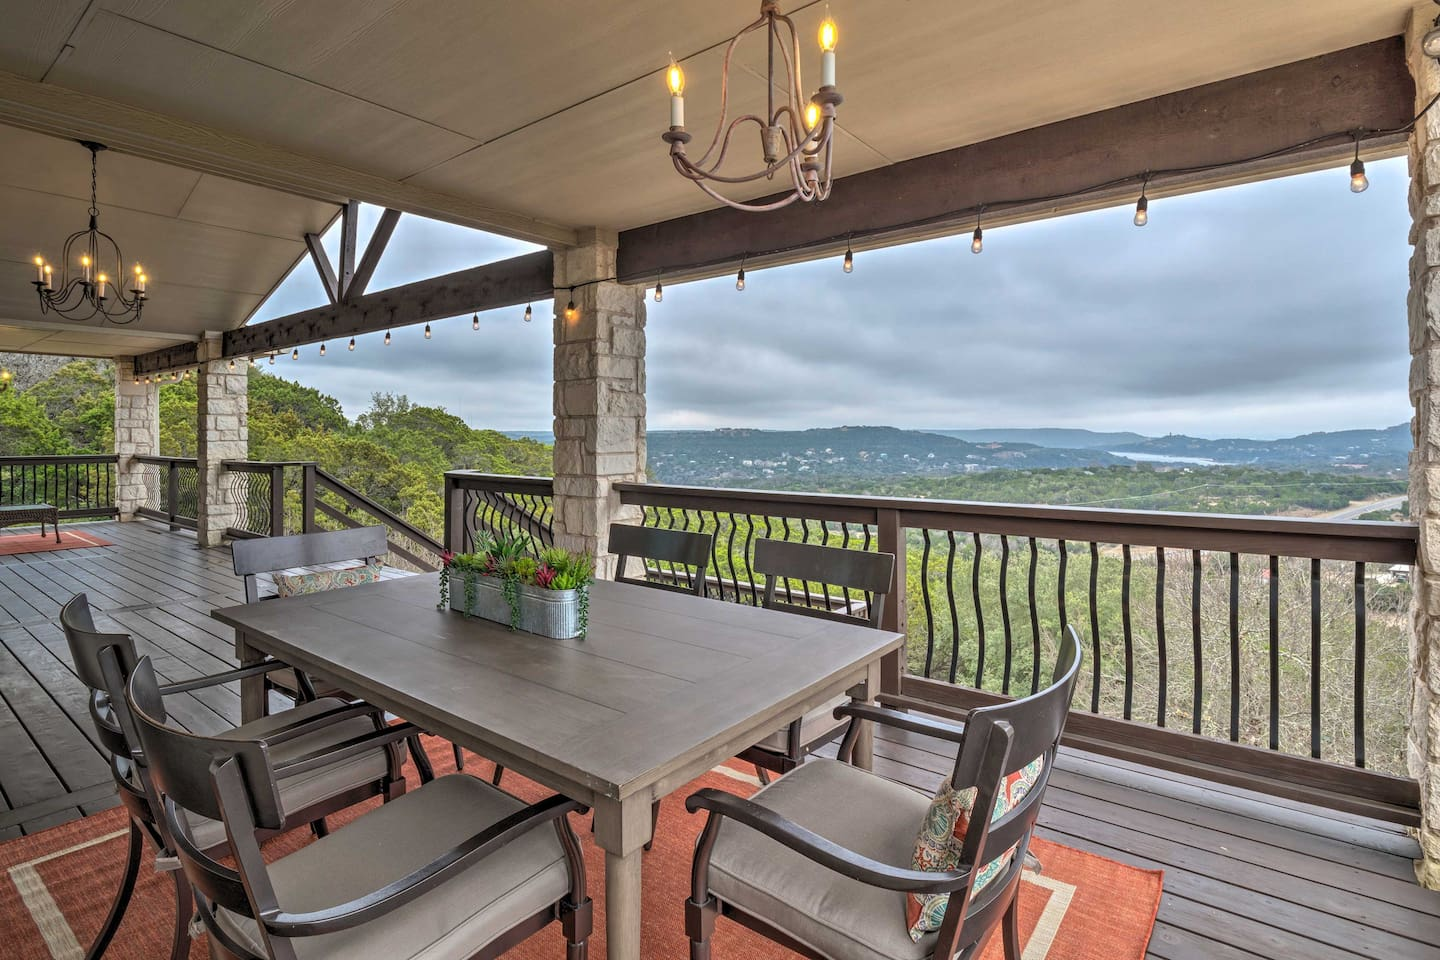 Enjoy views for miles from the deck of this Jonestown vacation rental house.